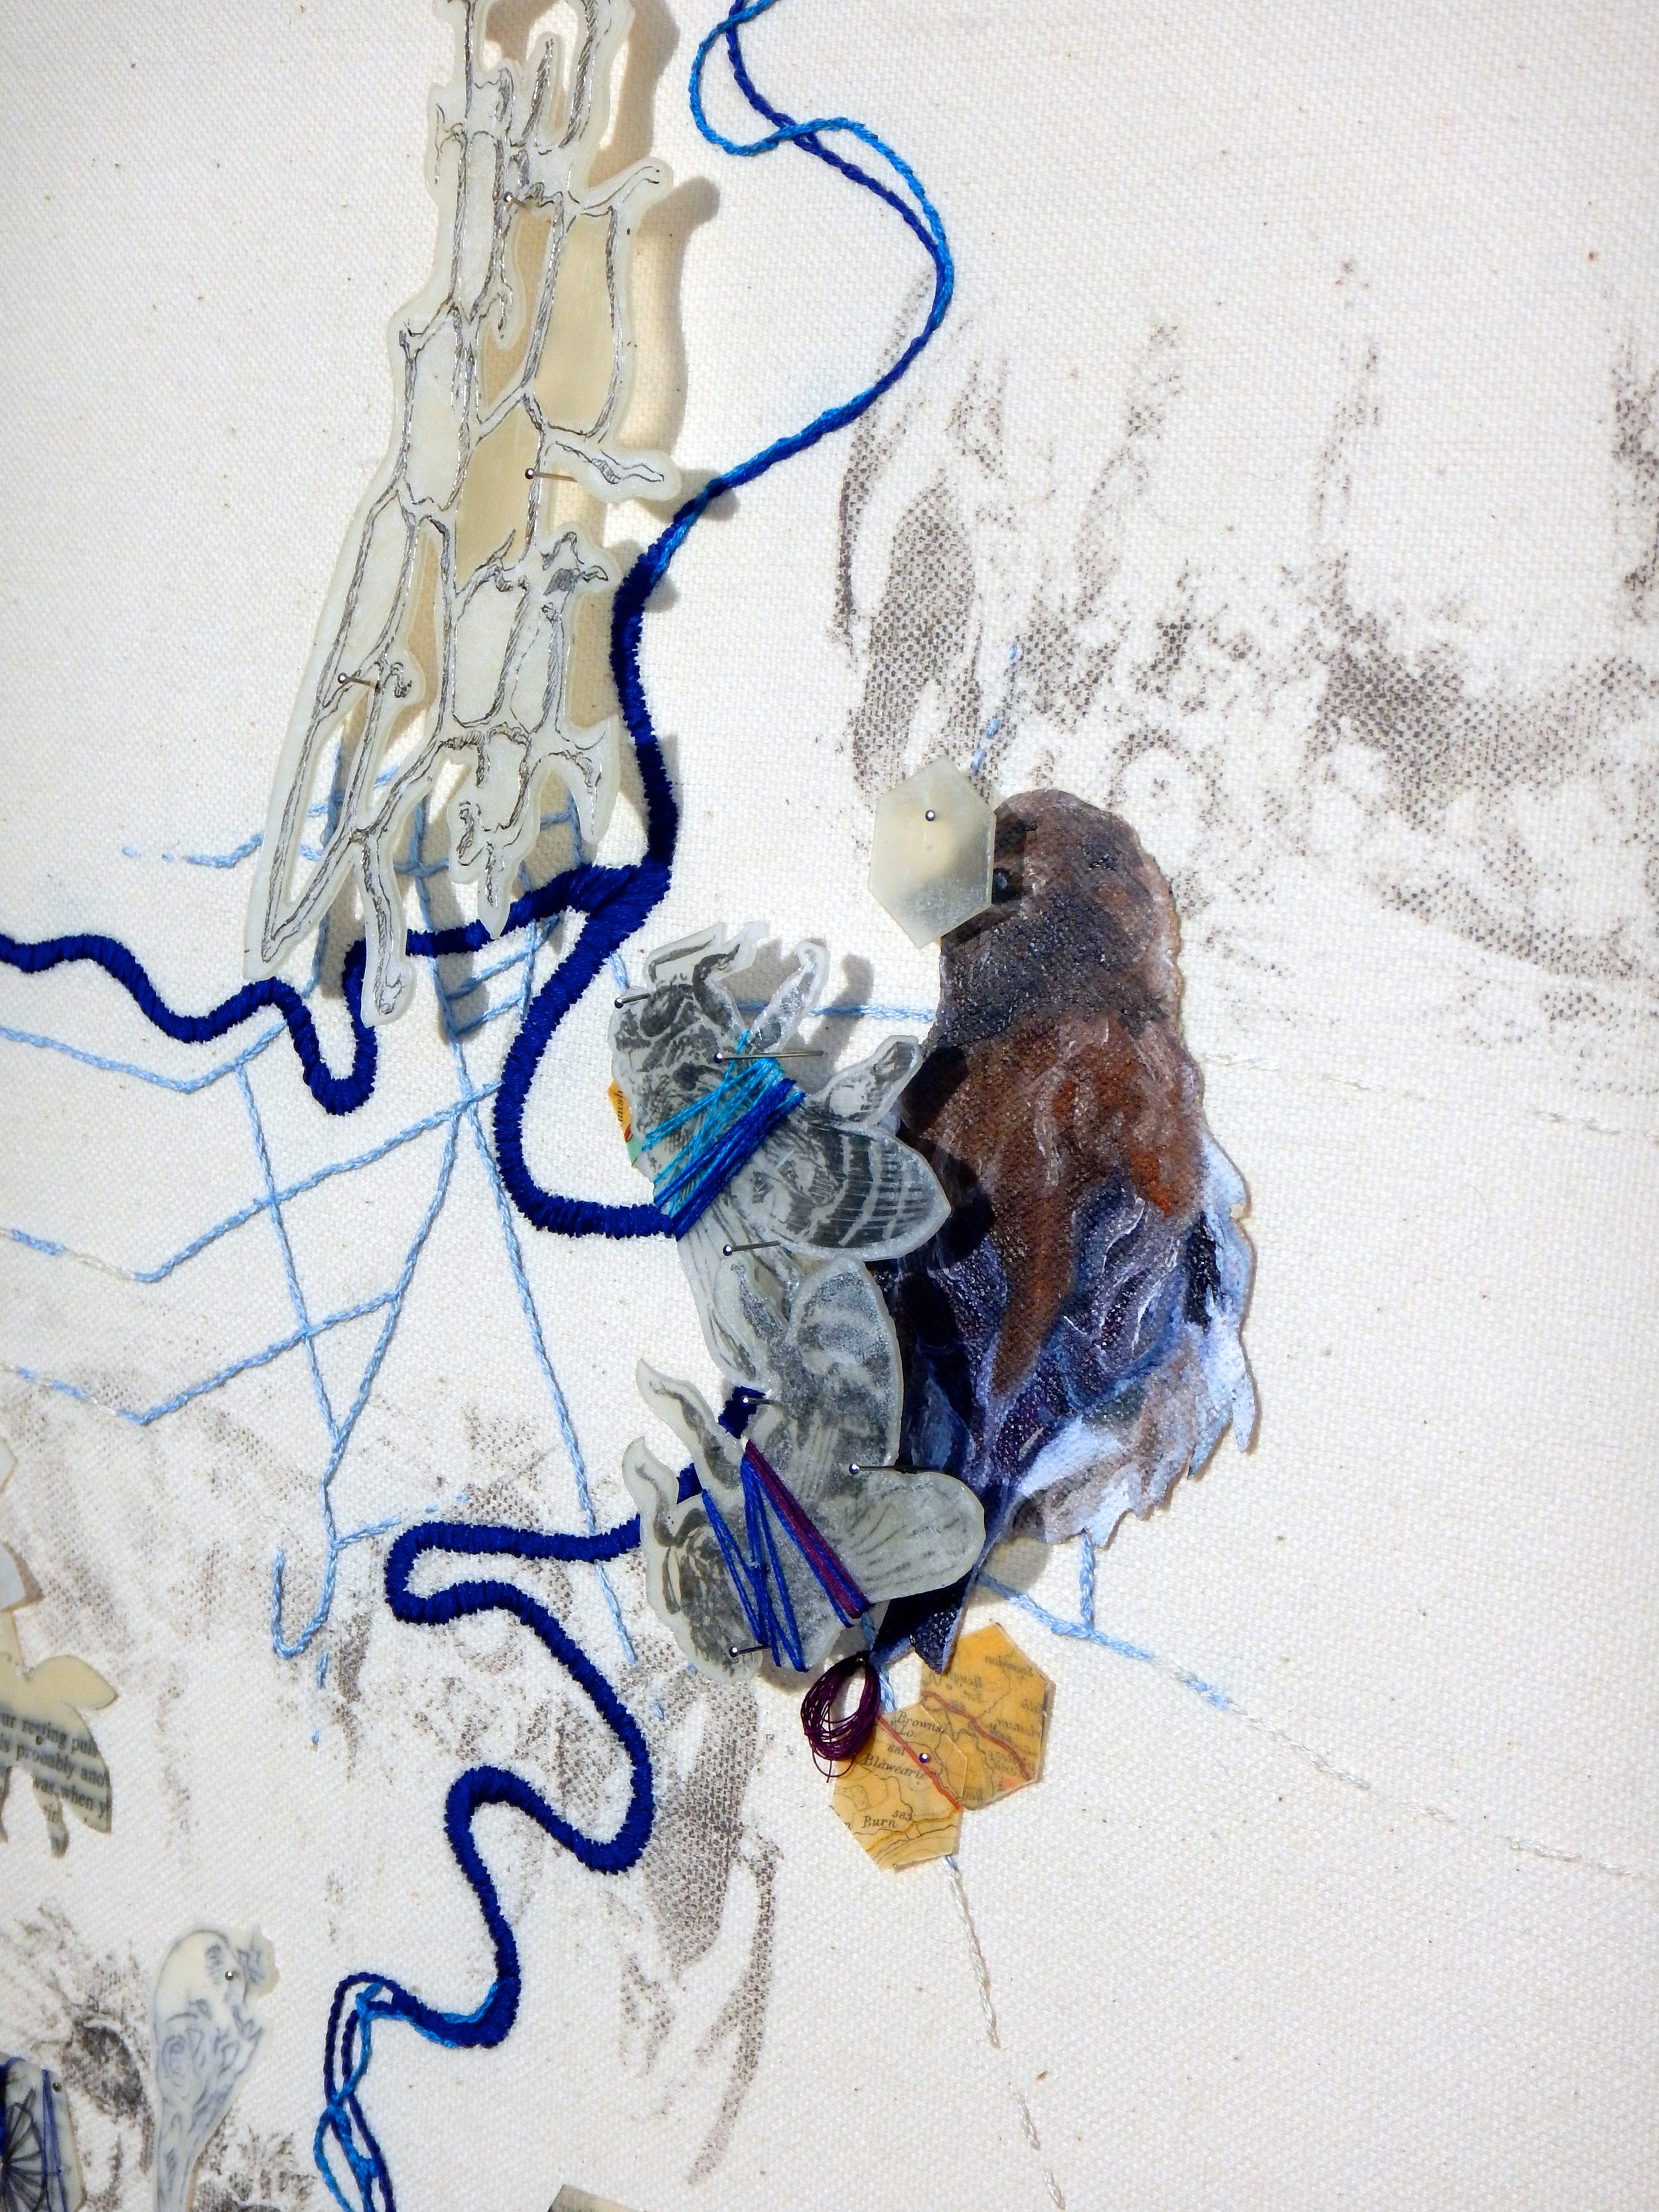 We Used to Live Here : Rivers (detail)